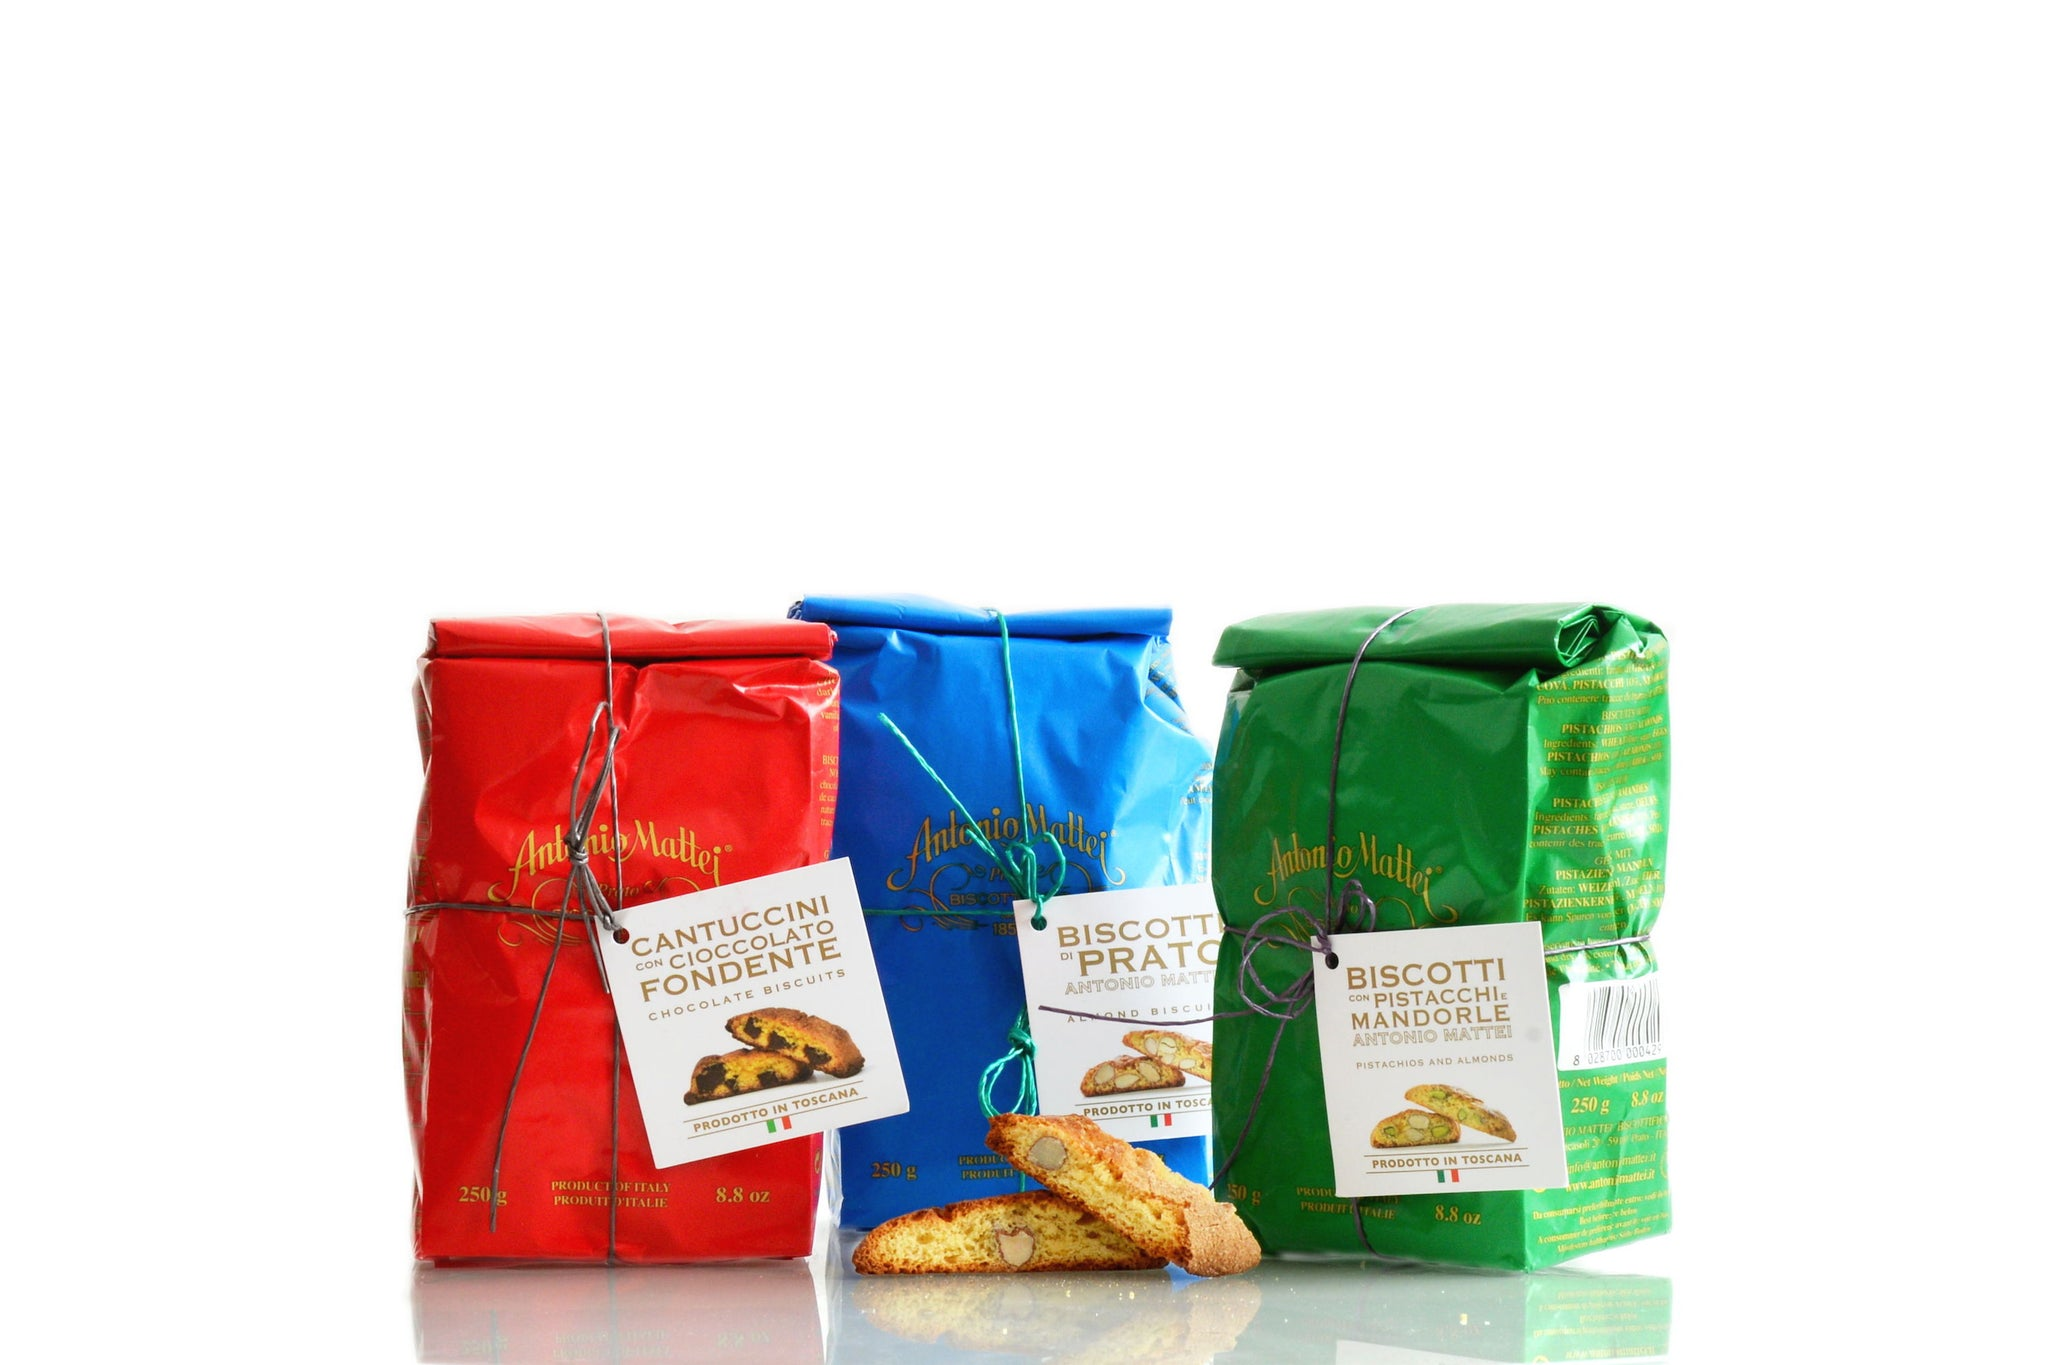 Antonio Mattei Cantucci Trio - Original Recipe Cantucci - Chocolate Cantucci - Pistachios & Almonds Cantucci - Exclusive to the Red Beetle